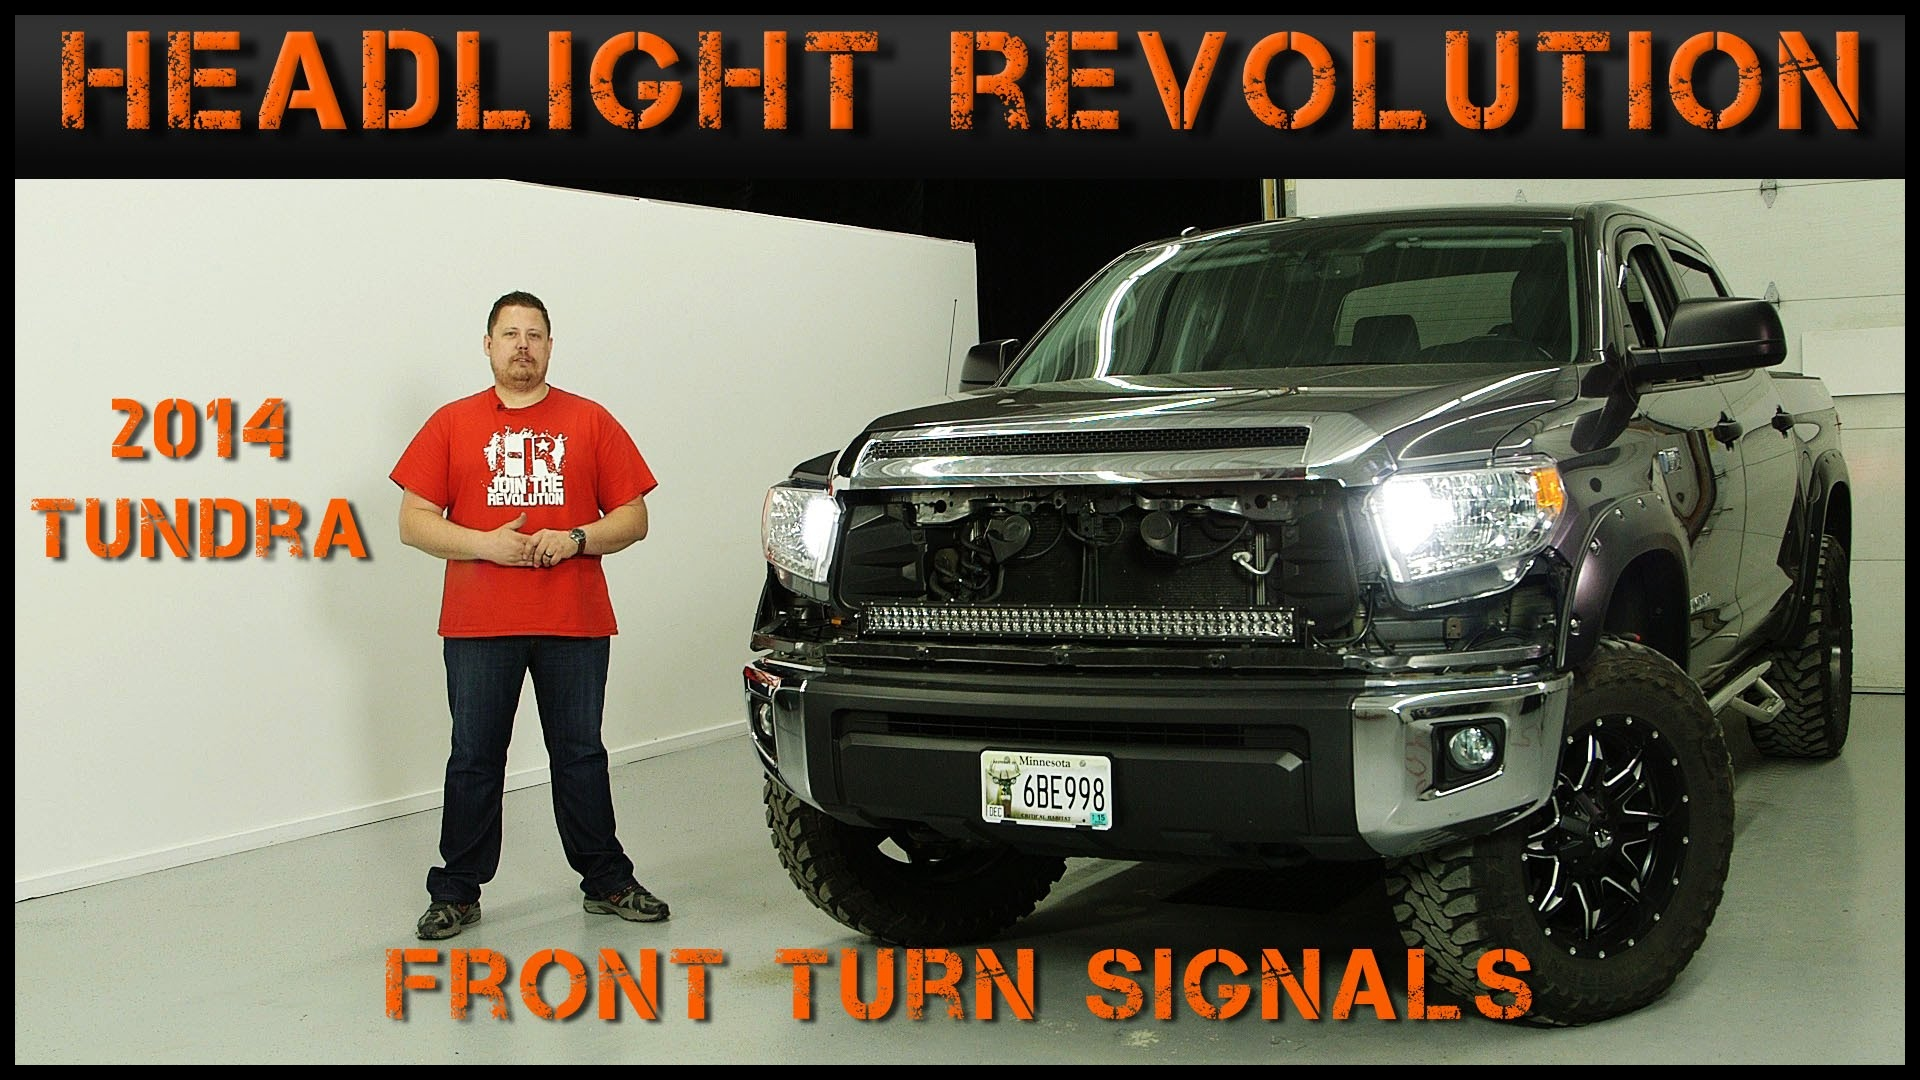 2014 2017 Toyota Tundra Front Turn Signals Tundra Video Series